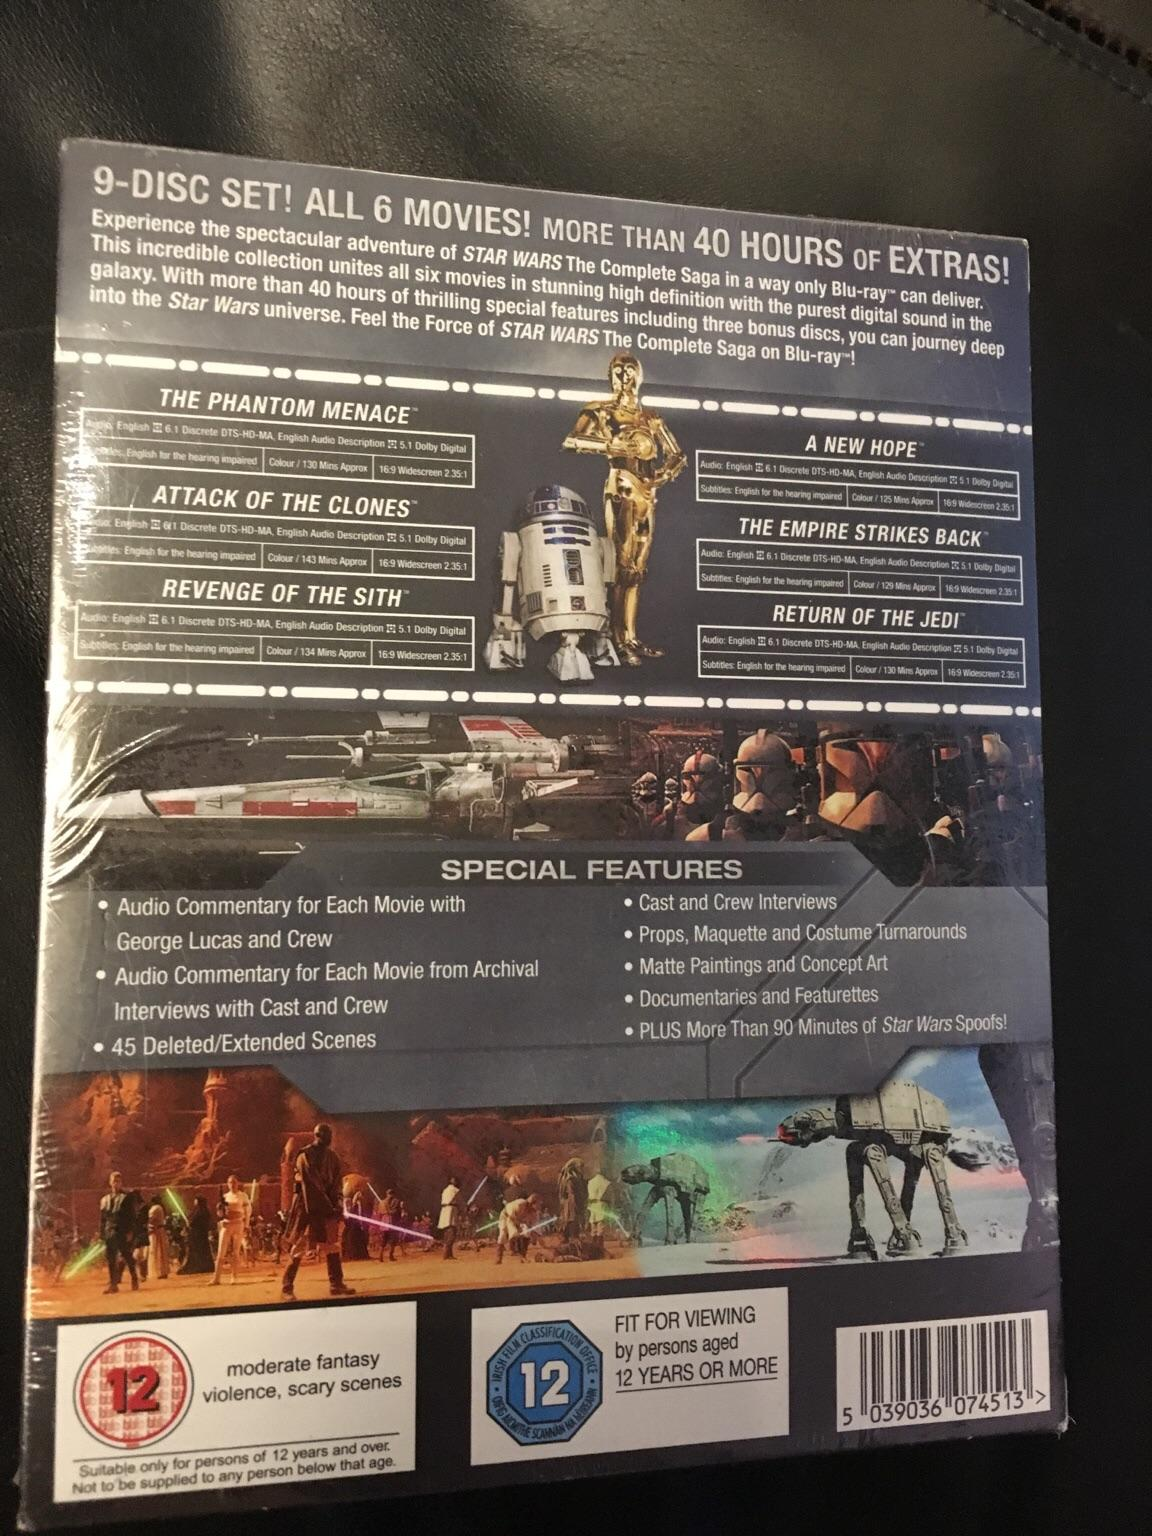 Star Wars The Complete Saga Plus 40hrs Extras In Rg2 Shinfield For 30 00 For Sale Shpock